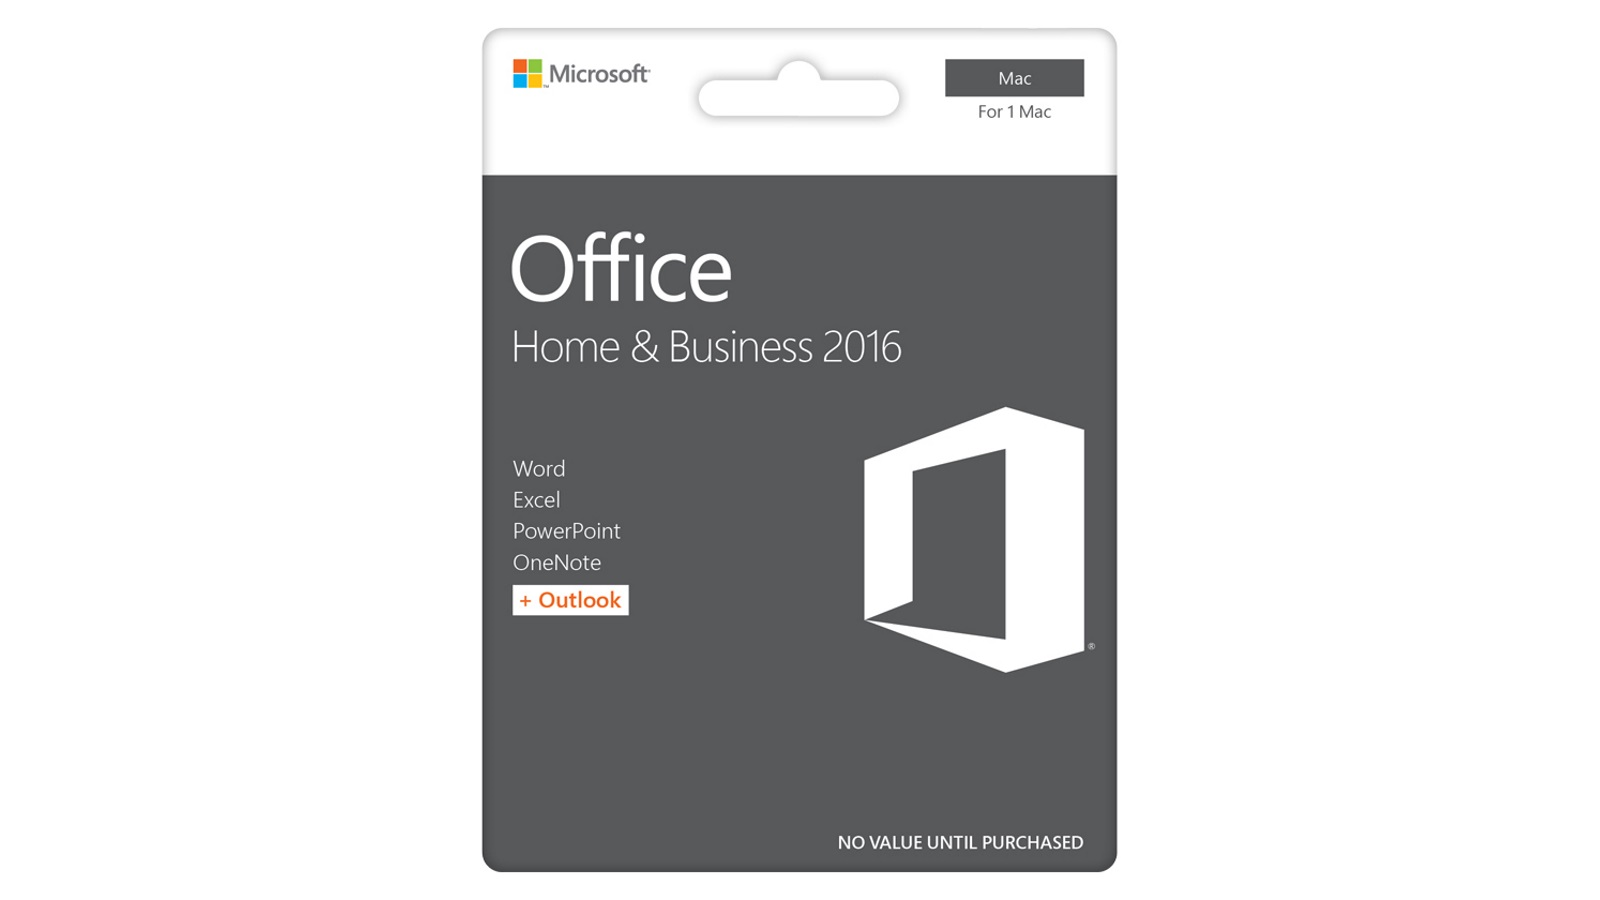 Office 2016 product logos.